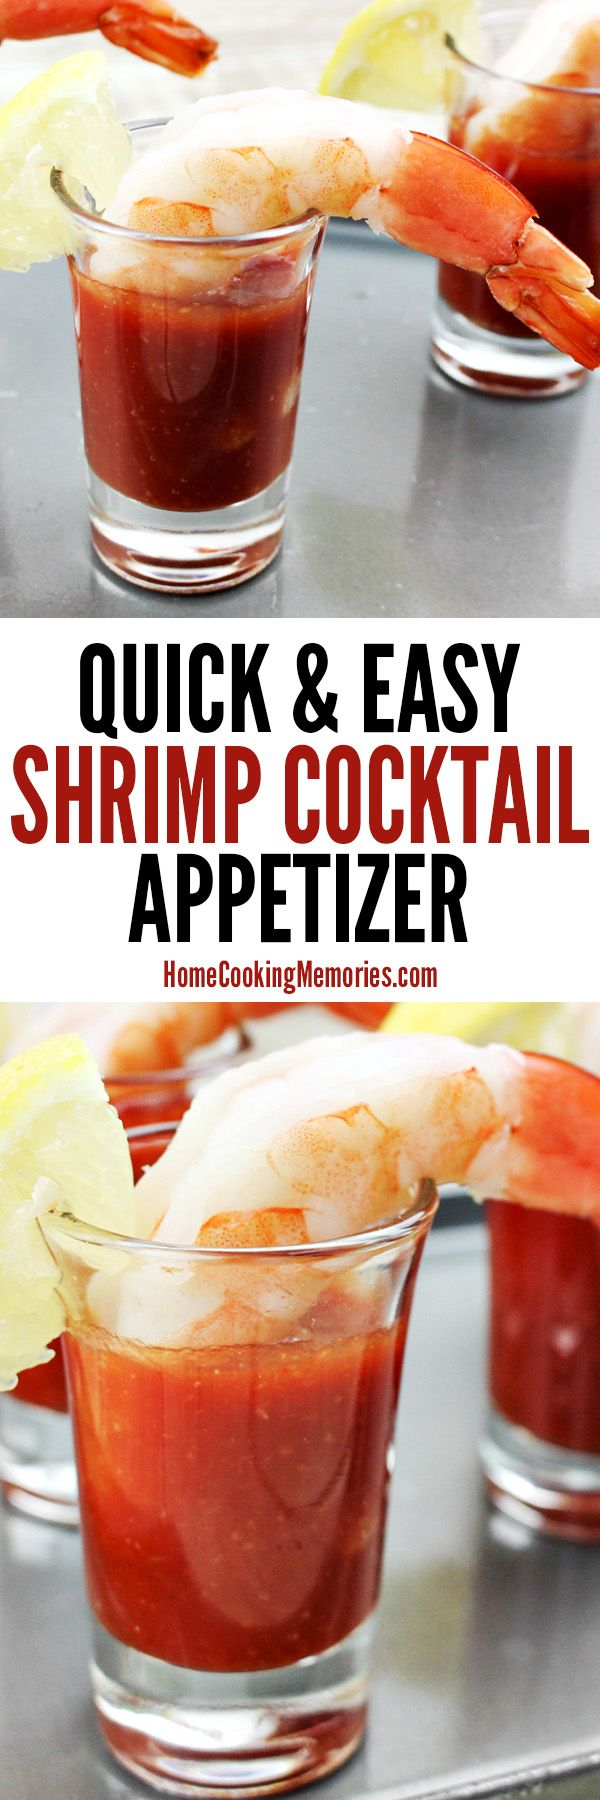 This Easy Shrimp Cocktail Appetizer Recipe is not only simple to make, but it's also low in fat & calories. Elegant enough for formal gatherings, but also a favorite at casual parties or even game day. You'll need: small serving glasses, jumbo shrimp, lemon, a bay leaf, salt, and cocktail sauce.